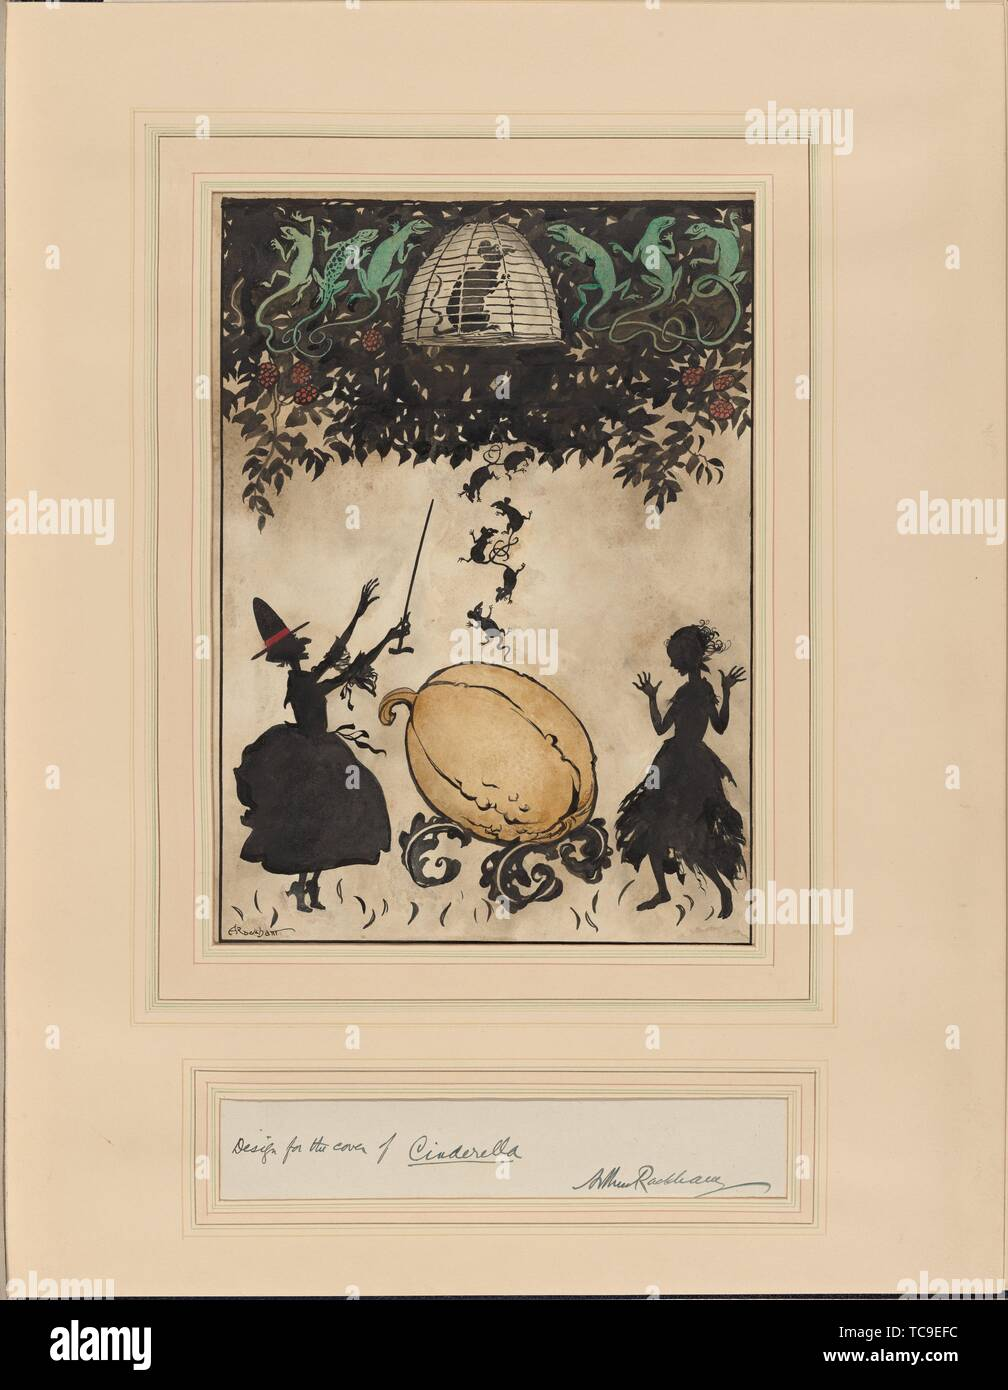 Cinderella. Rackham, Arthur, 1867-1939 (Artist). Twenty-two original drawings. Date Created: 1919. Drawing, British. Drawings. Still image. Stock Photo